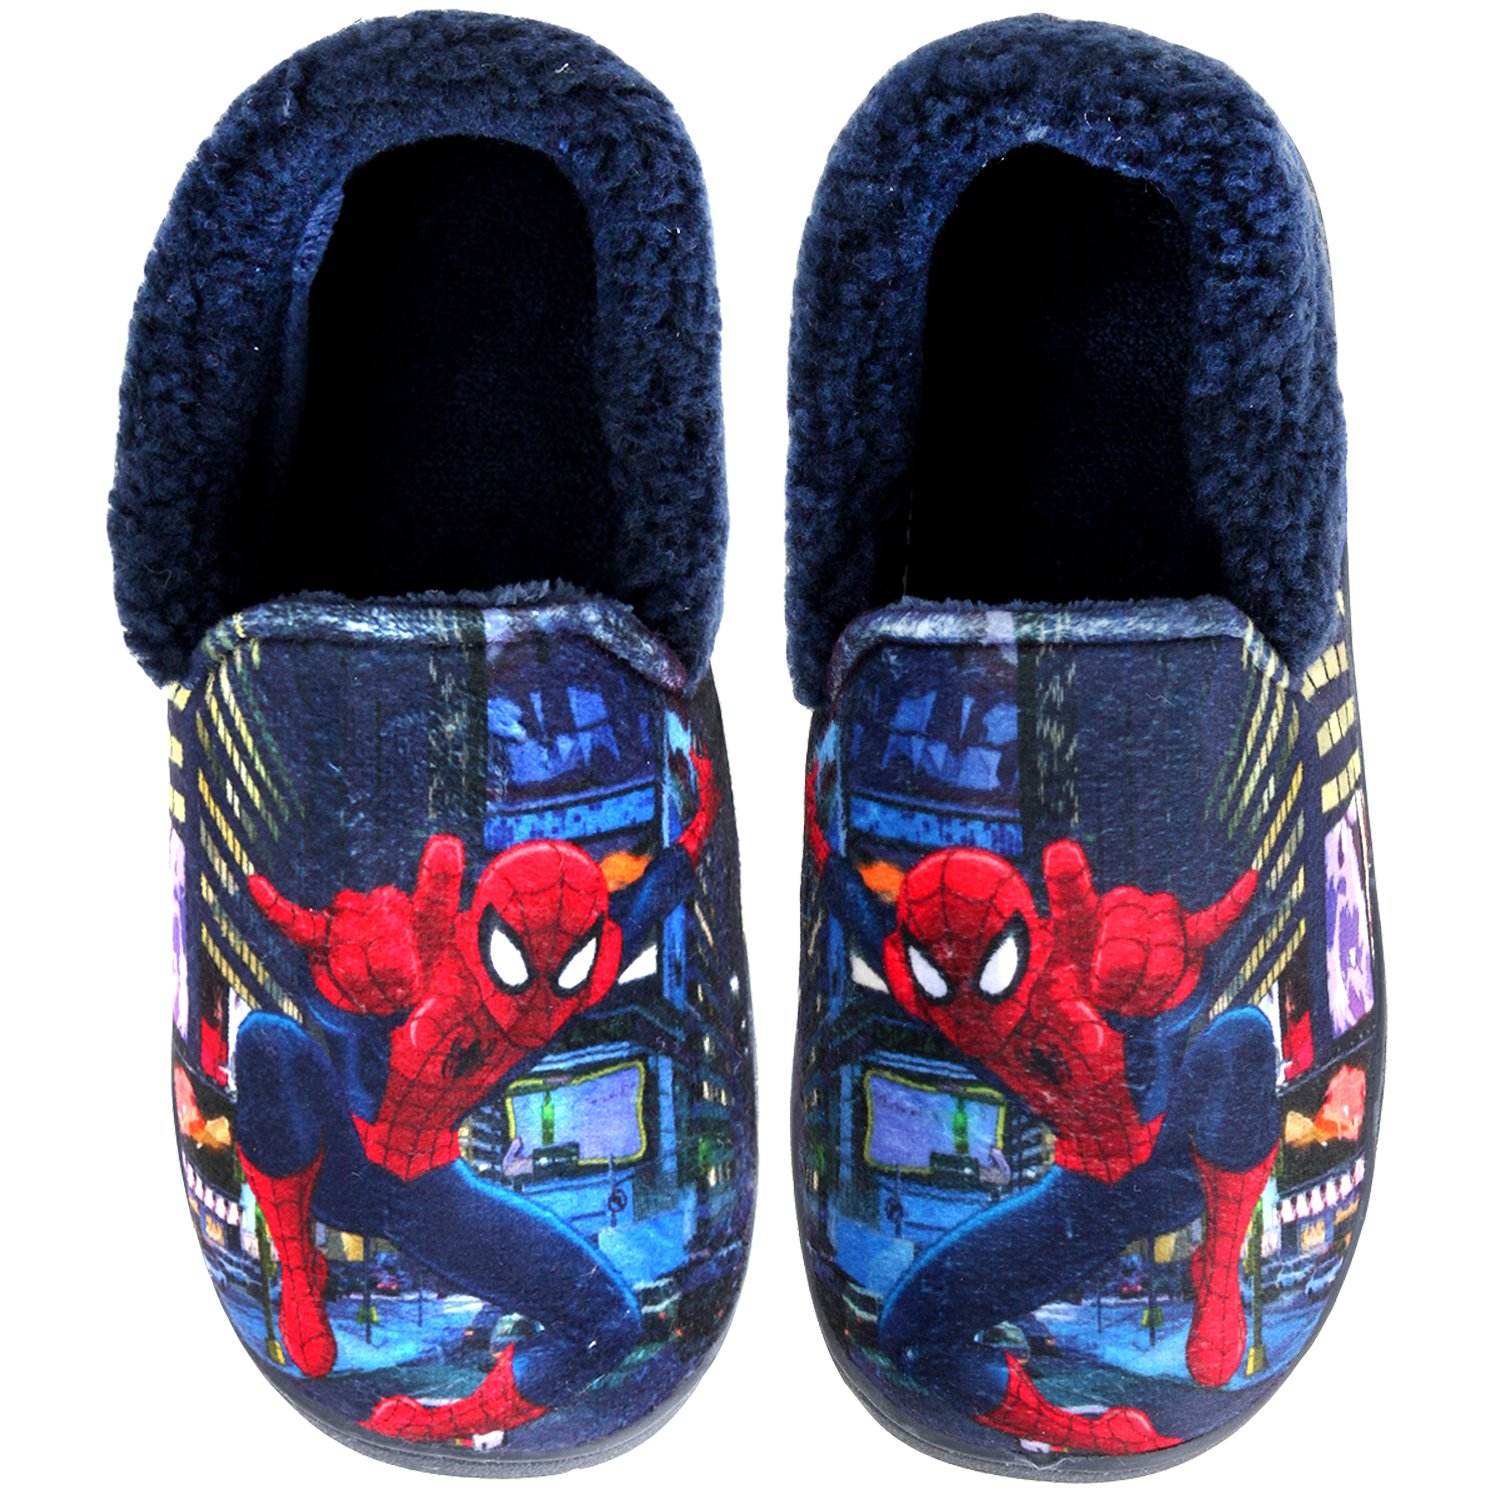 Joah Store Spider-Man Slippers for Boys Navy Red Warm Fur Clog Mule Indoor Shoes (3.5 M US Big Kid, Spider-Man)